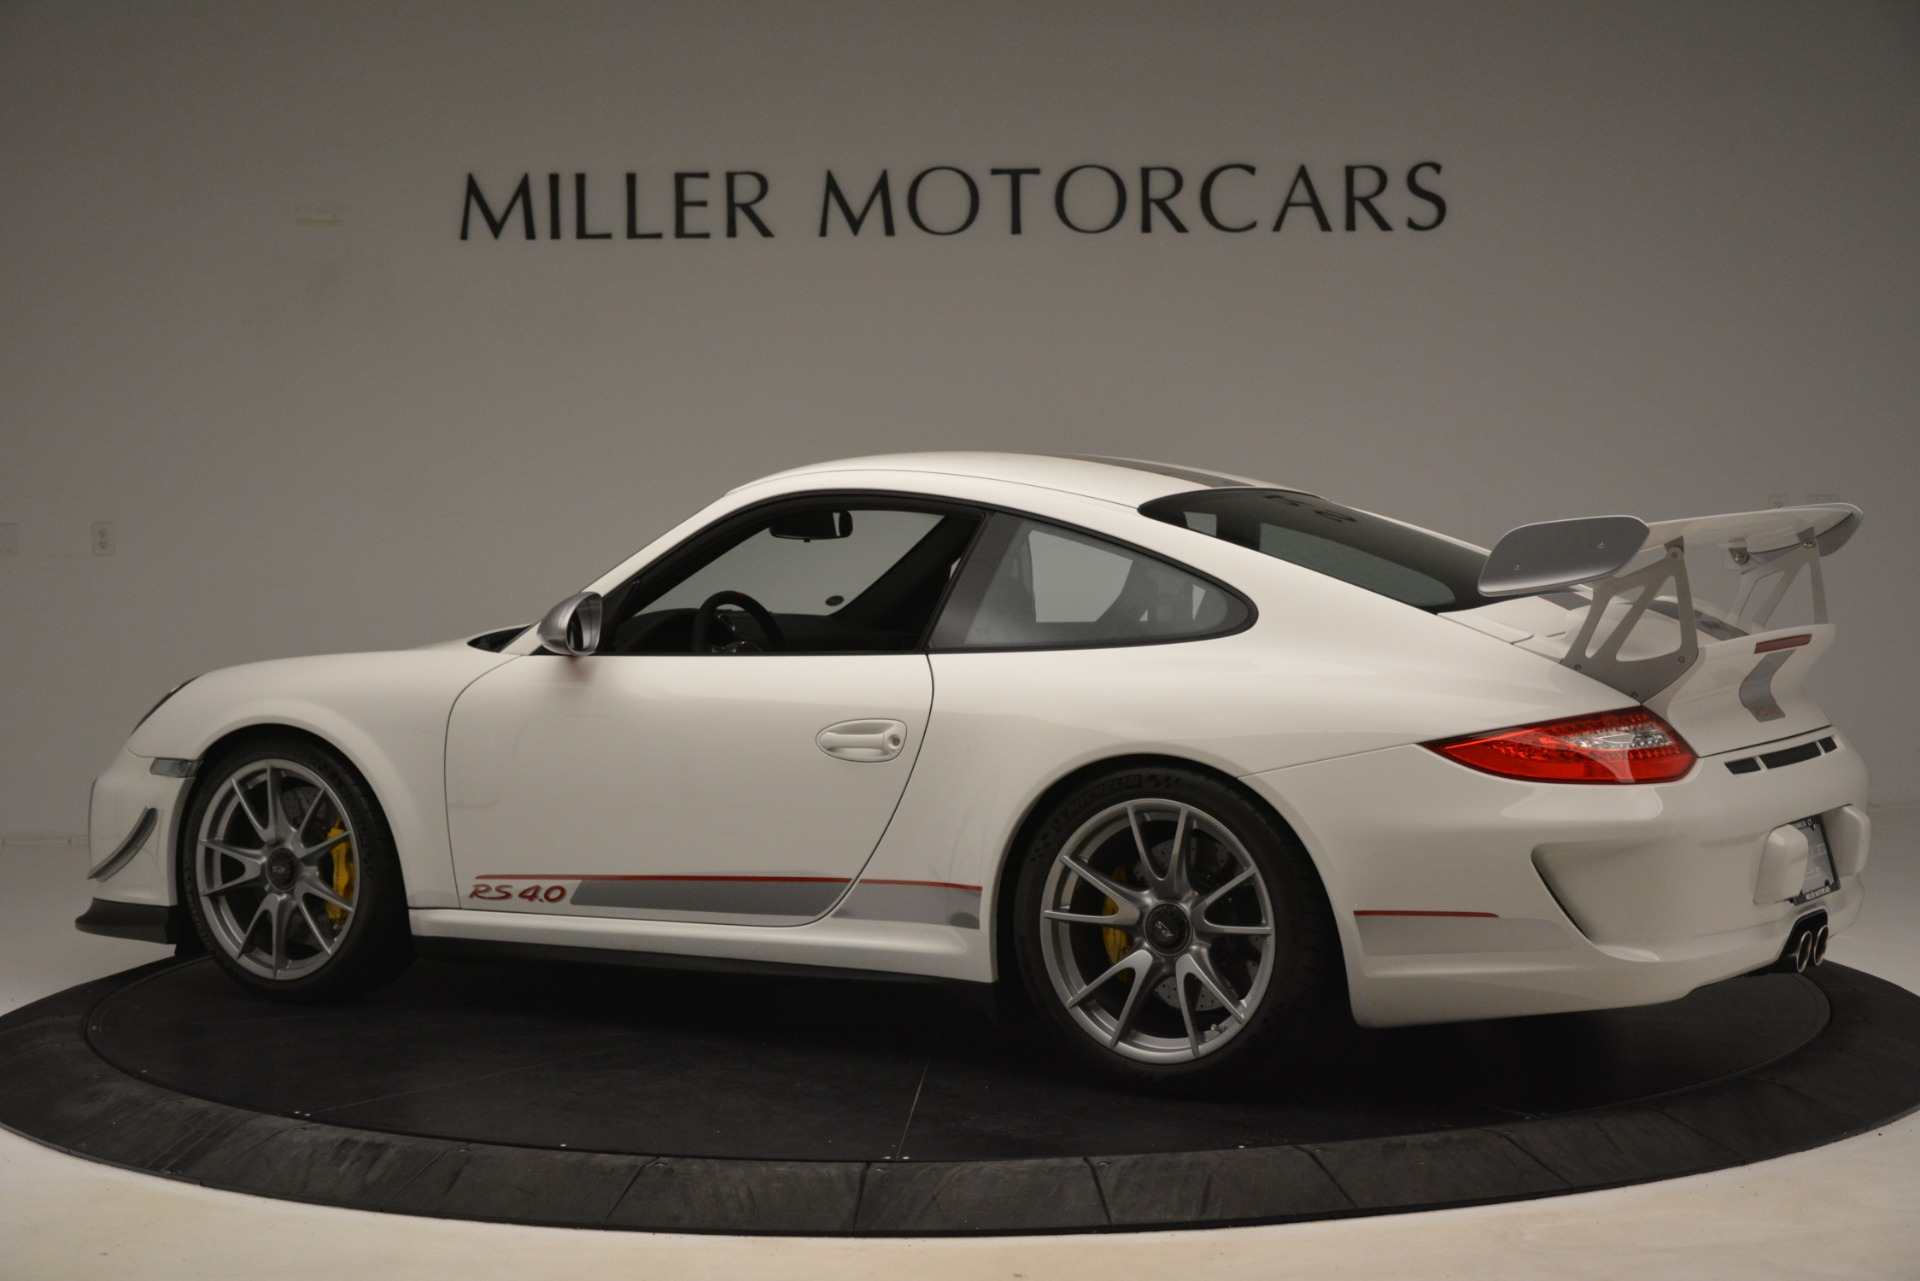 Used 2011 Porsche 911 GT3 RS 4.0 For Sale In Greenwich, CT 3188_p4